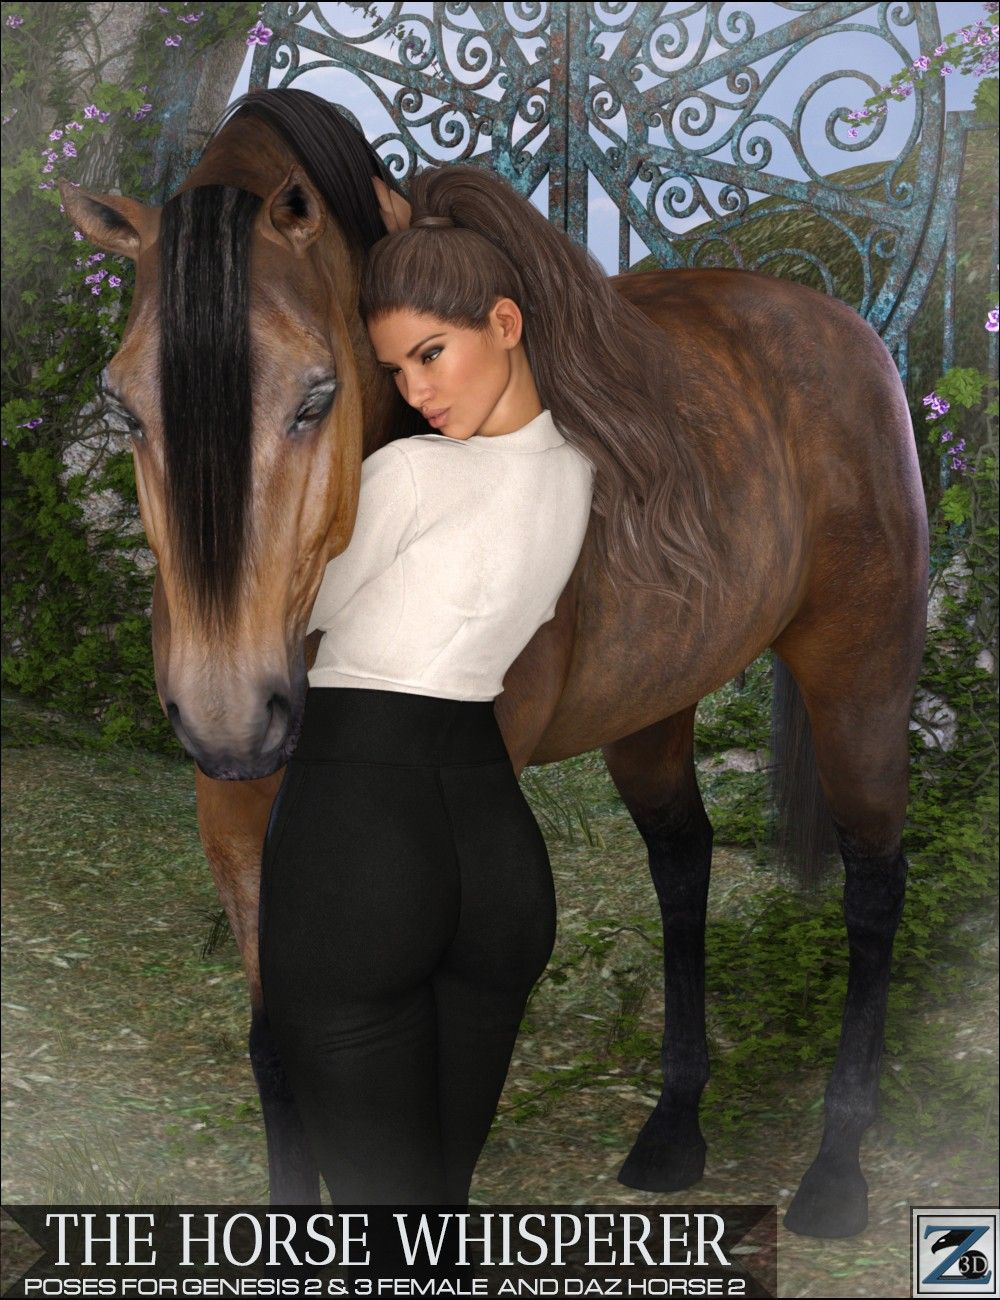 Z The Horse Whisperer - Poses for Genesis 2 & 3 Female and Daz Horse 2 | 3D Models and 3D Software by Daz 3D